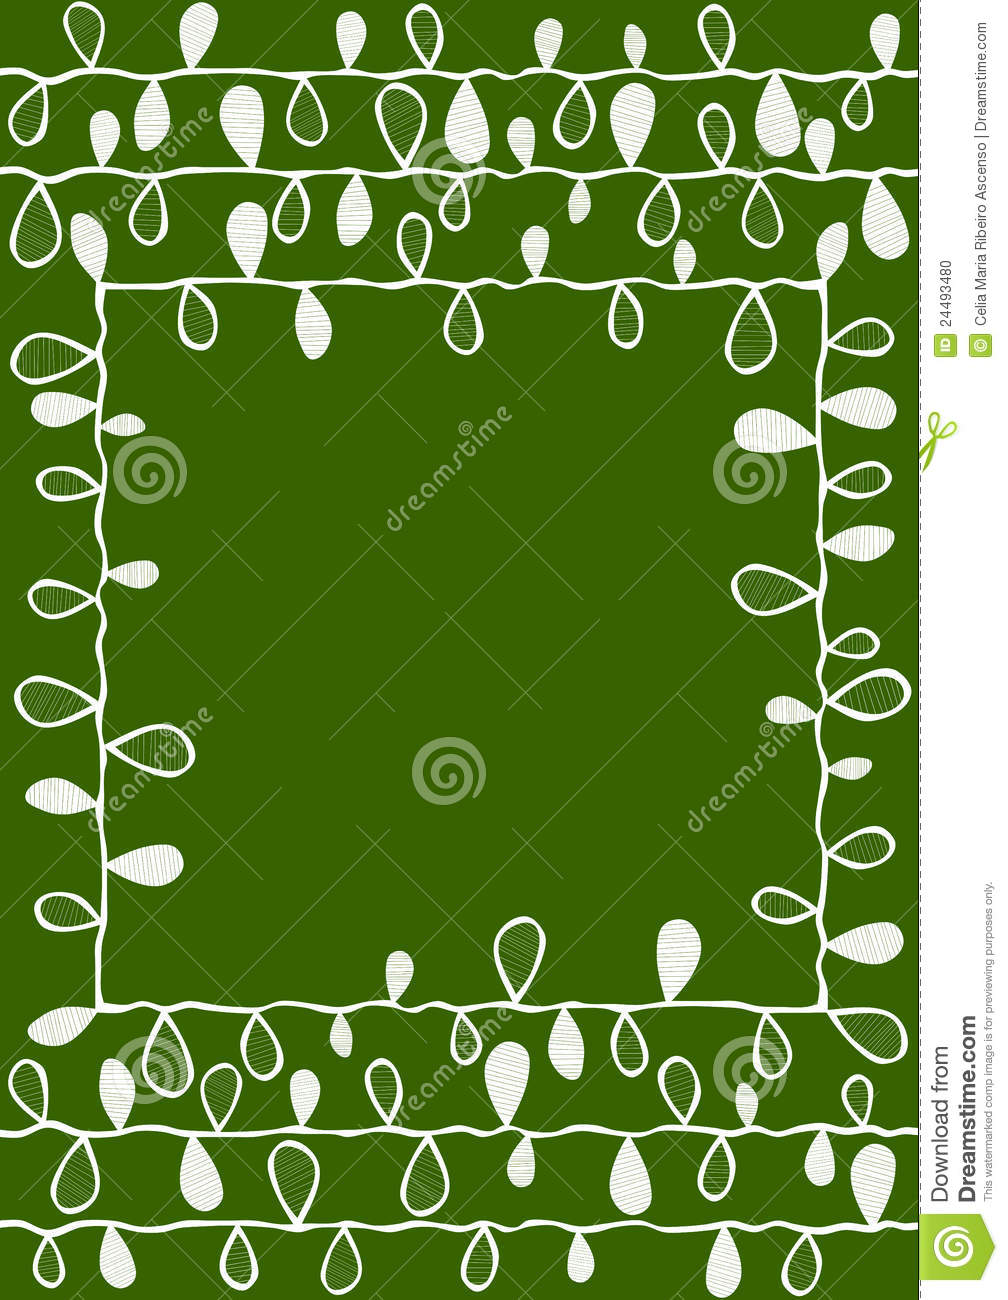 Tree With Leaves Falling Wallpaper Wedding Green Invitation With Leaves Border Frame Stock